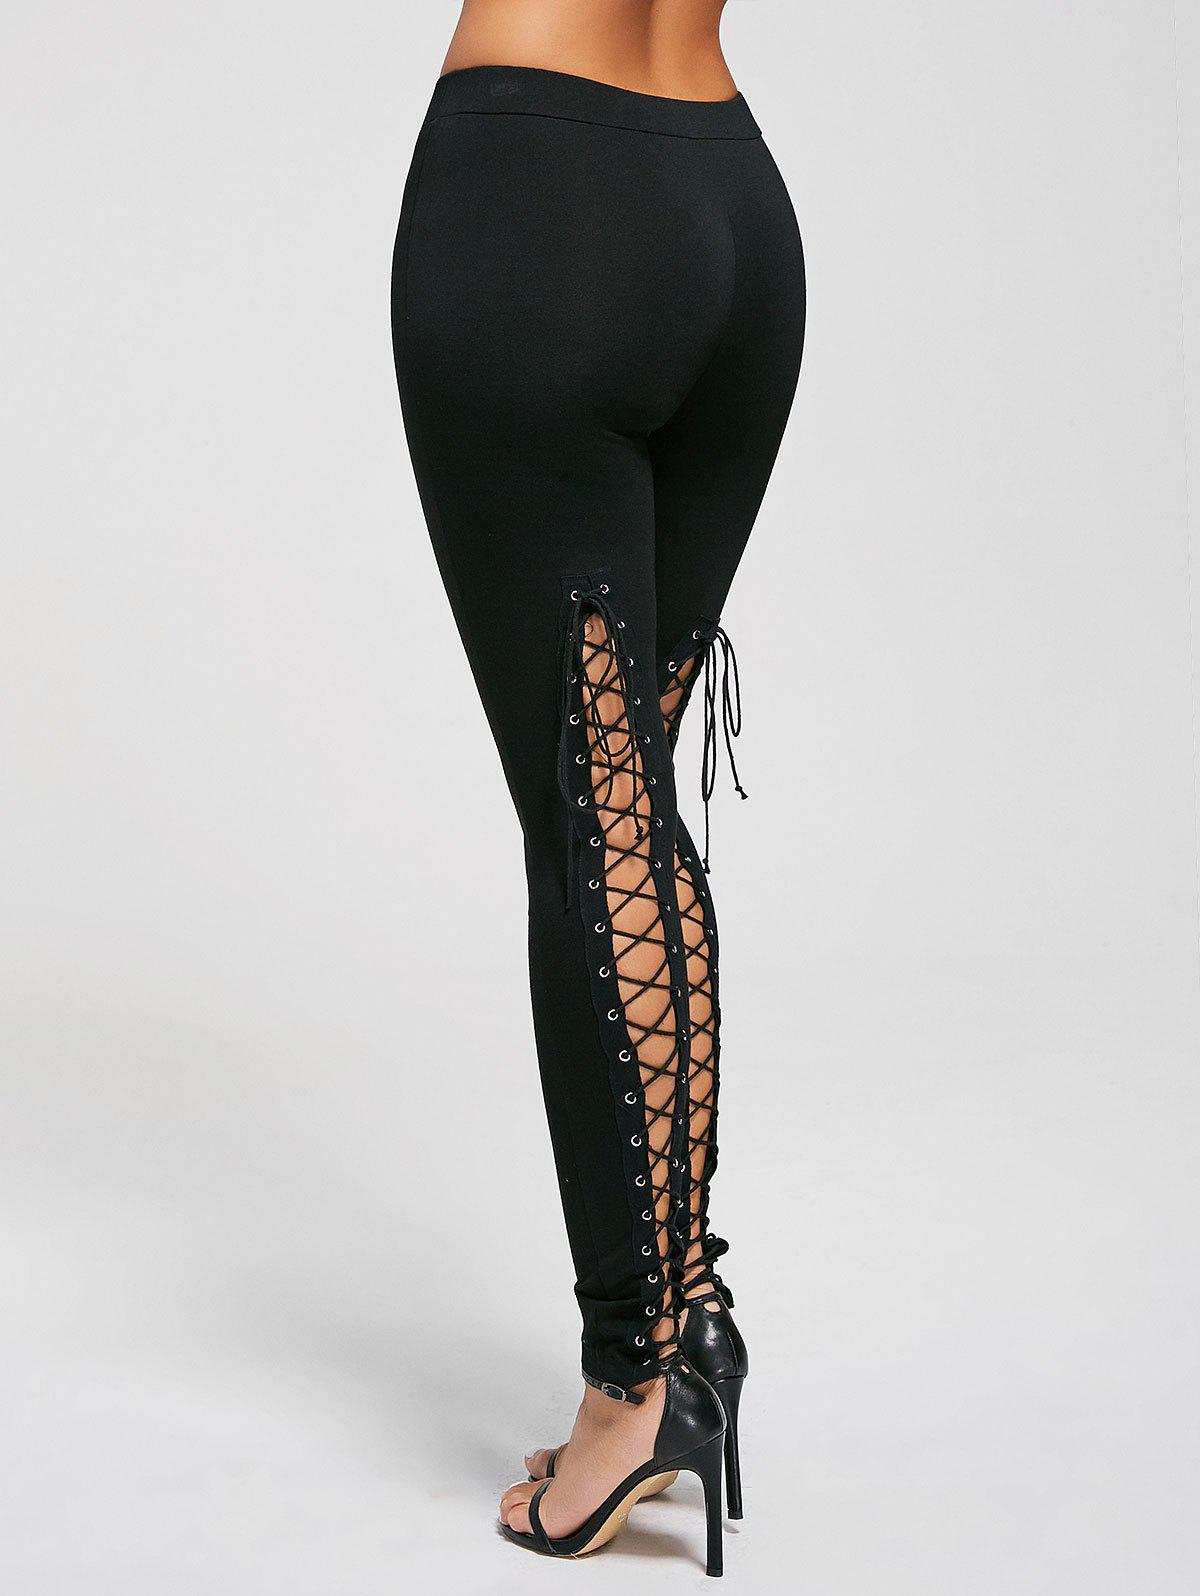 Lace Up Cut Out Leggings - BLACK L